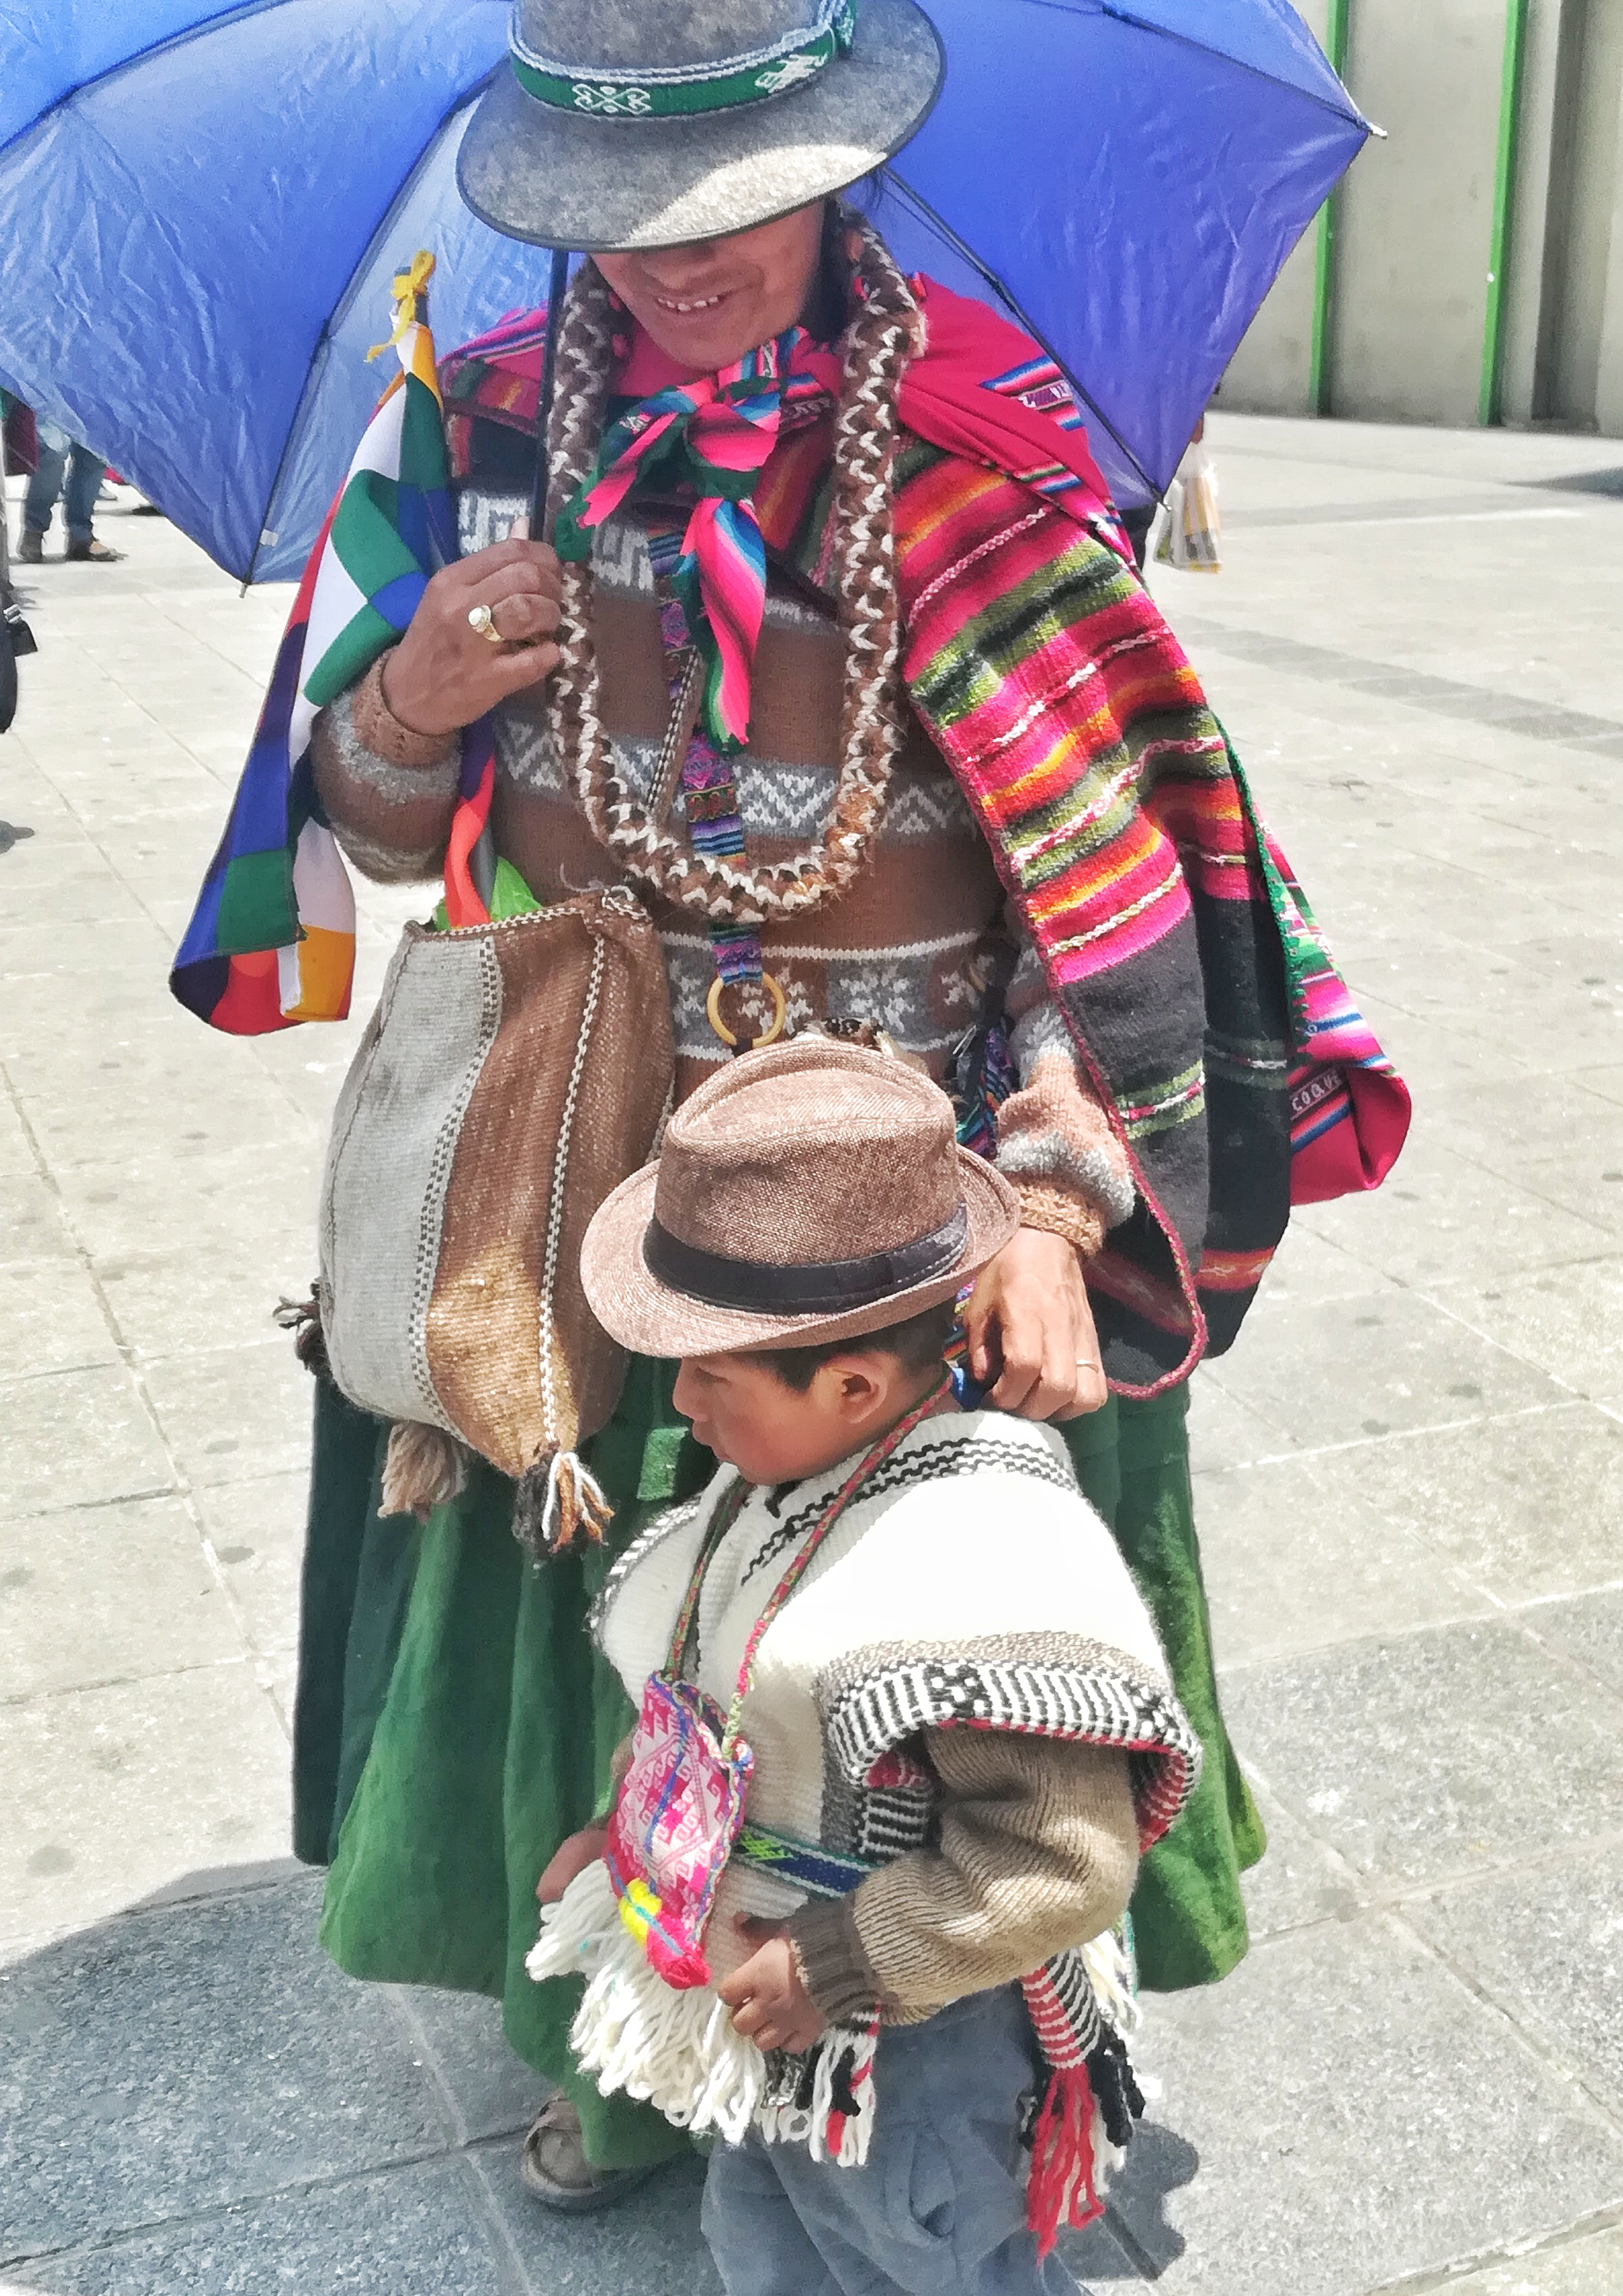 So many people still wearing the typical Bolivian getup! Loved it